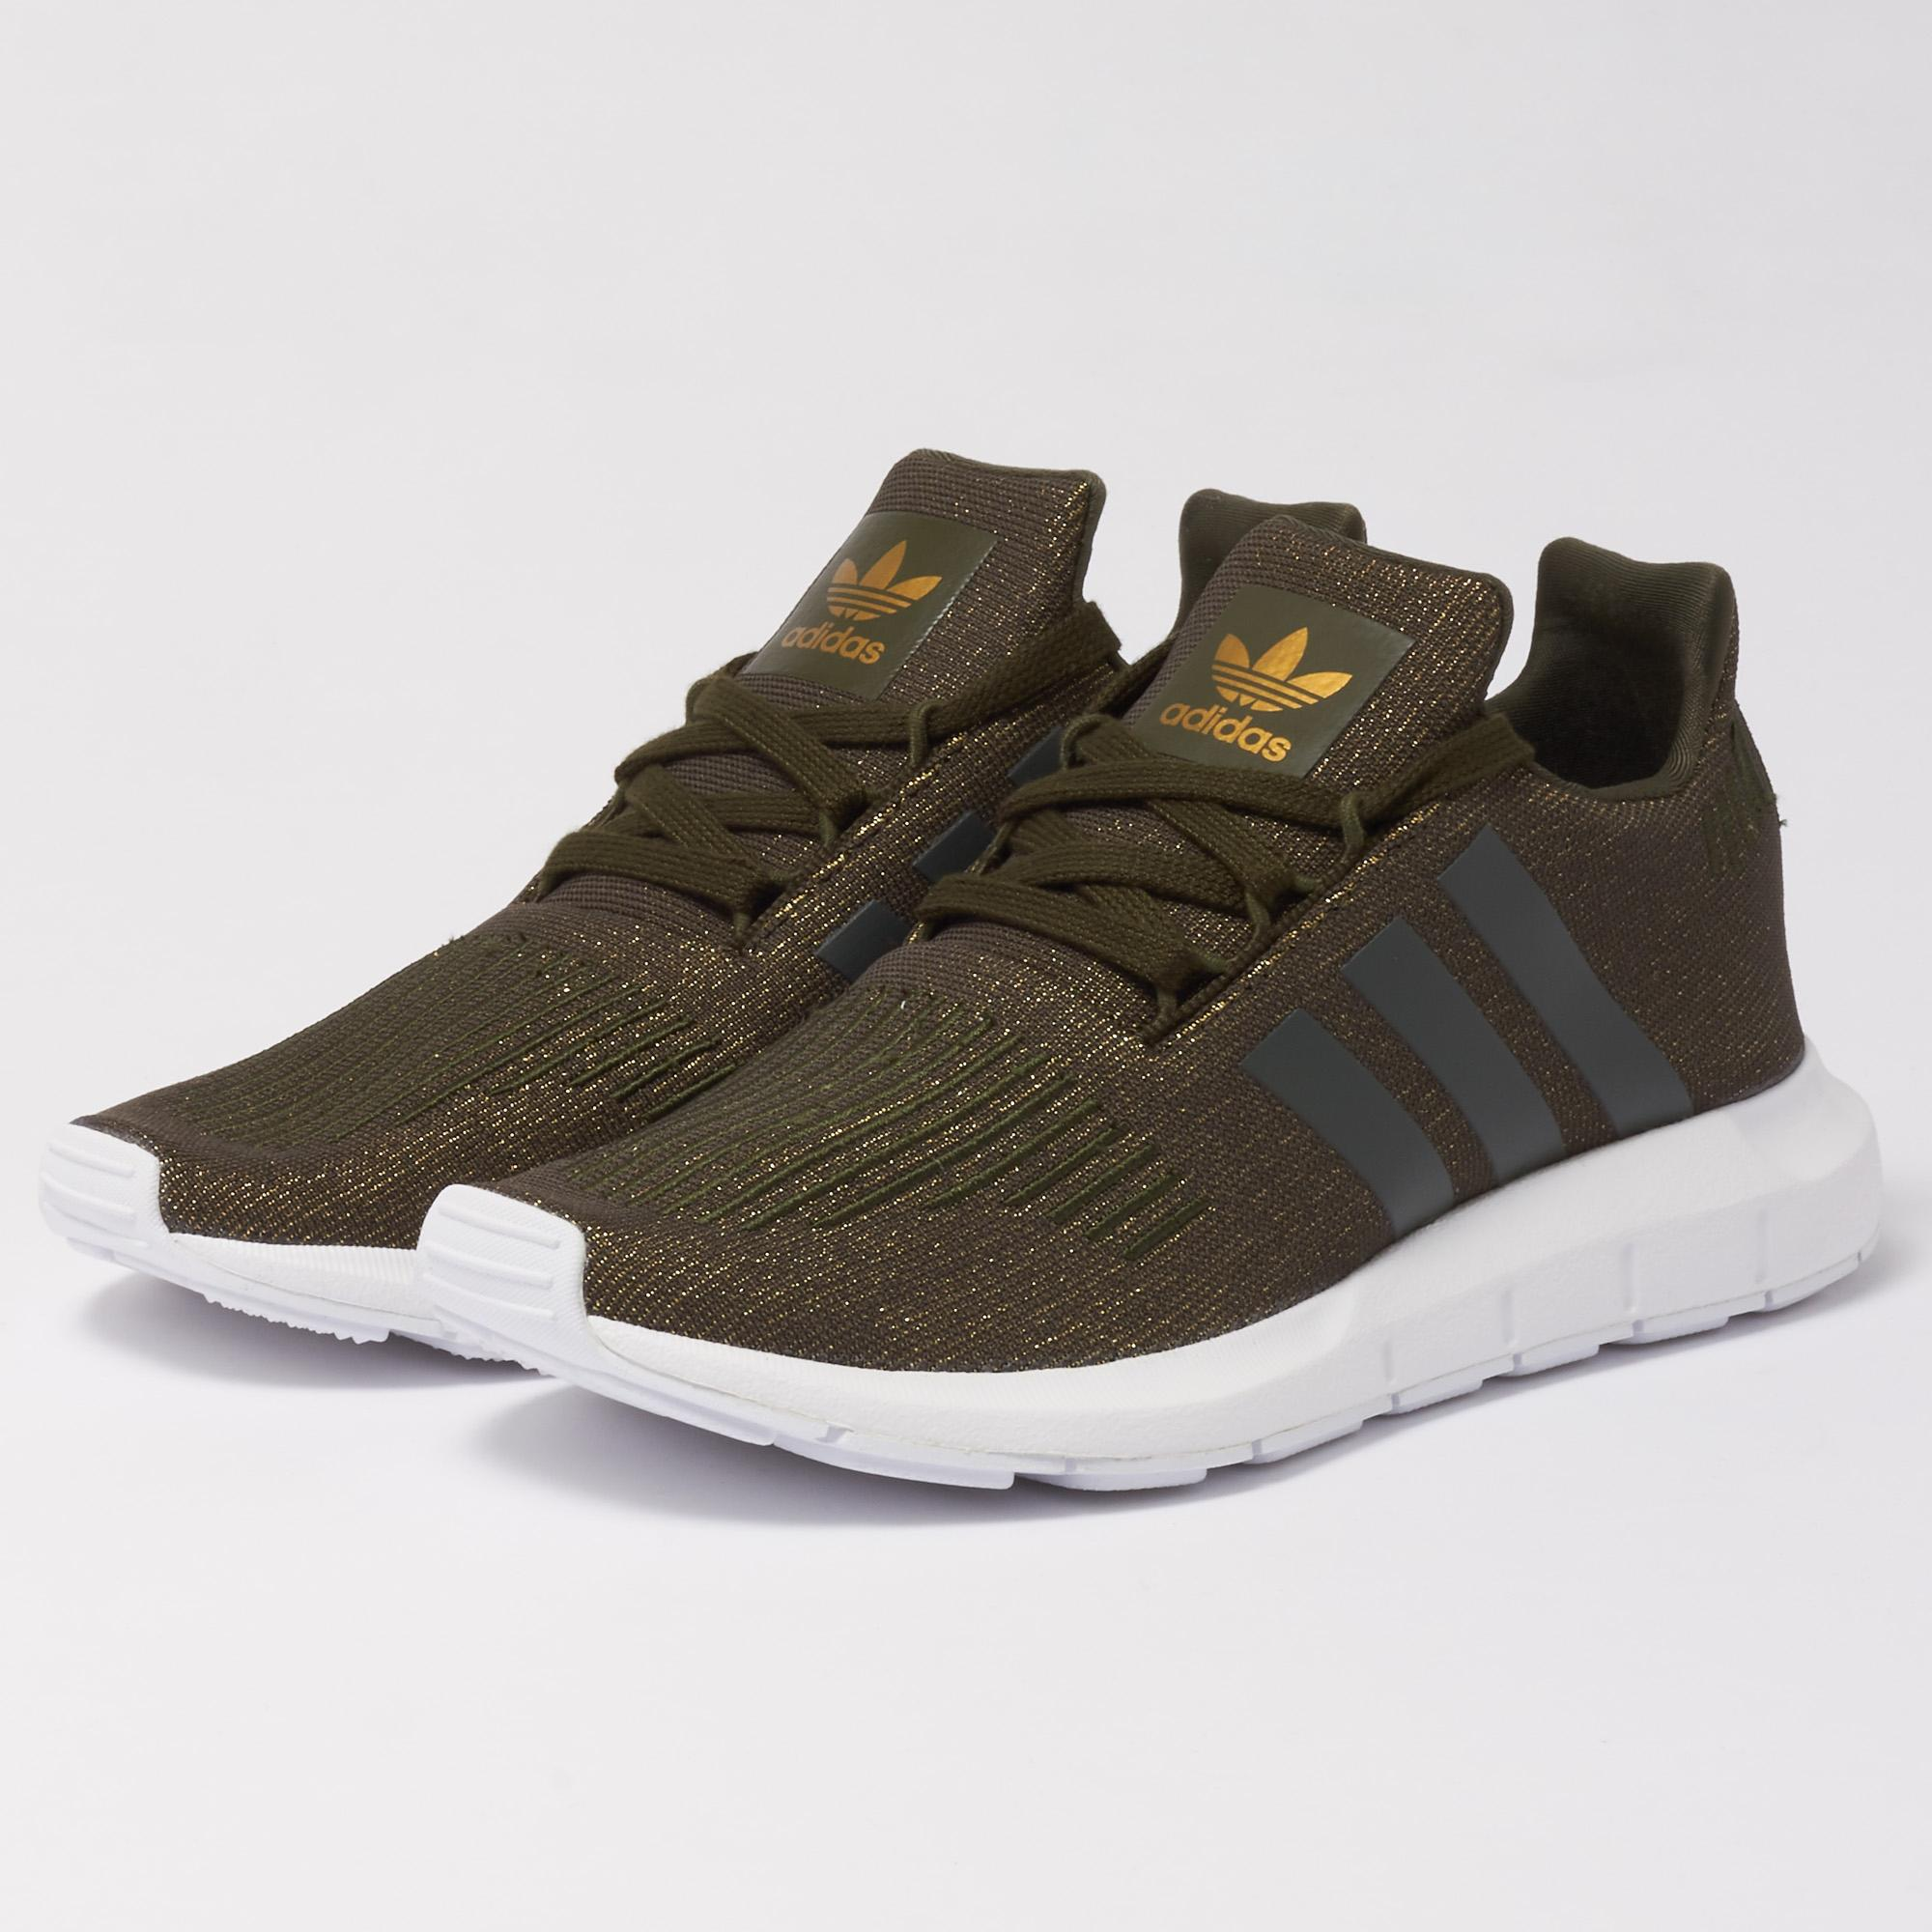 Adidas Originals Wmns Swift Run Verde Trainers Night Cargo in Verde Run for dd1d46